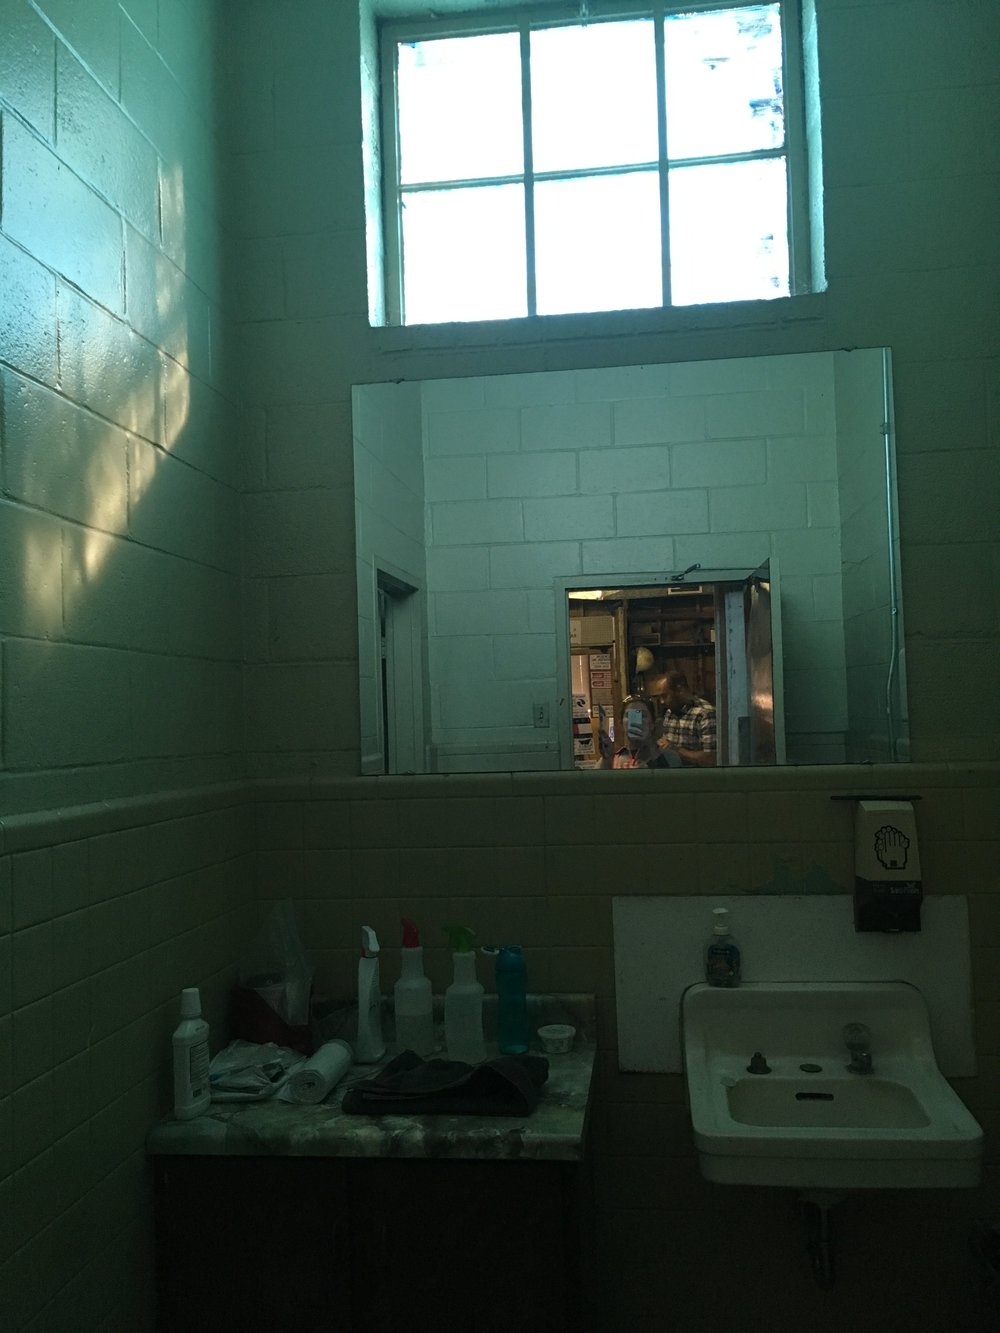 The bathroom in the current sign shop. Many of the fixtures, facilities, and features are unchanged.